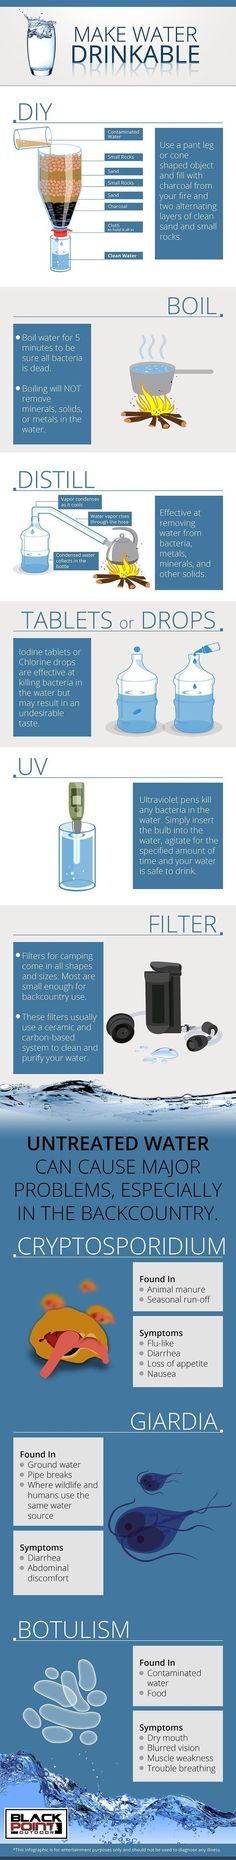 Make Water Drinkable | Why and How to Purify Water | Survival Skills, Tips And Tricks by Survival Life at survivallife.com/...